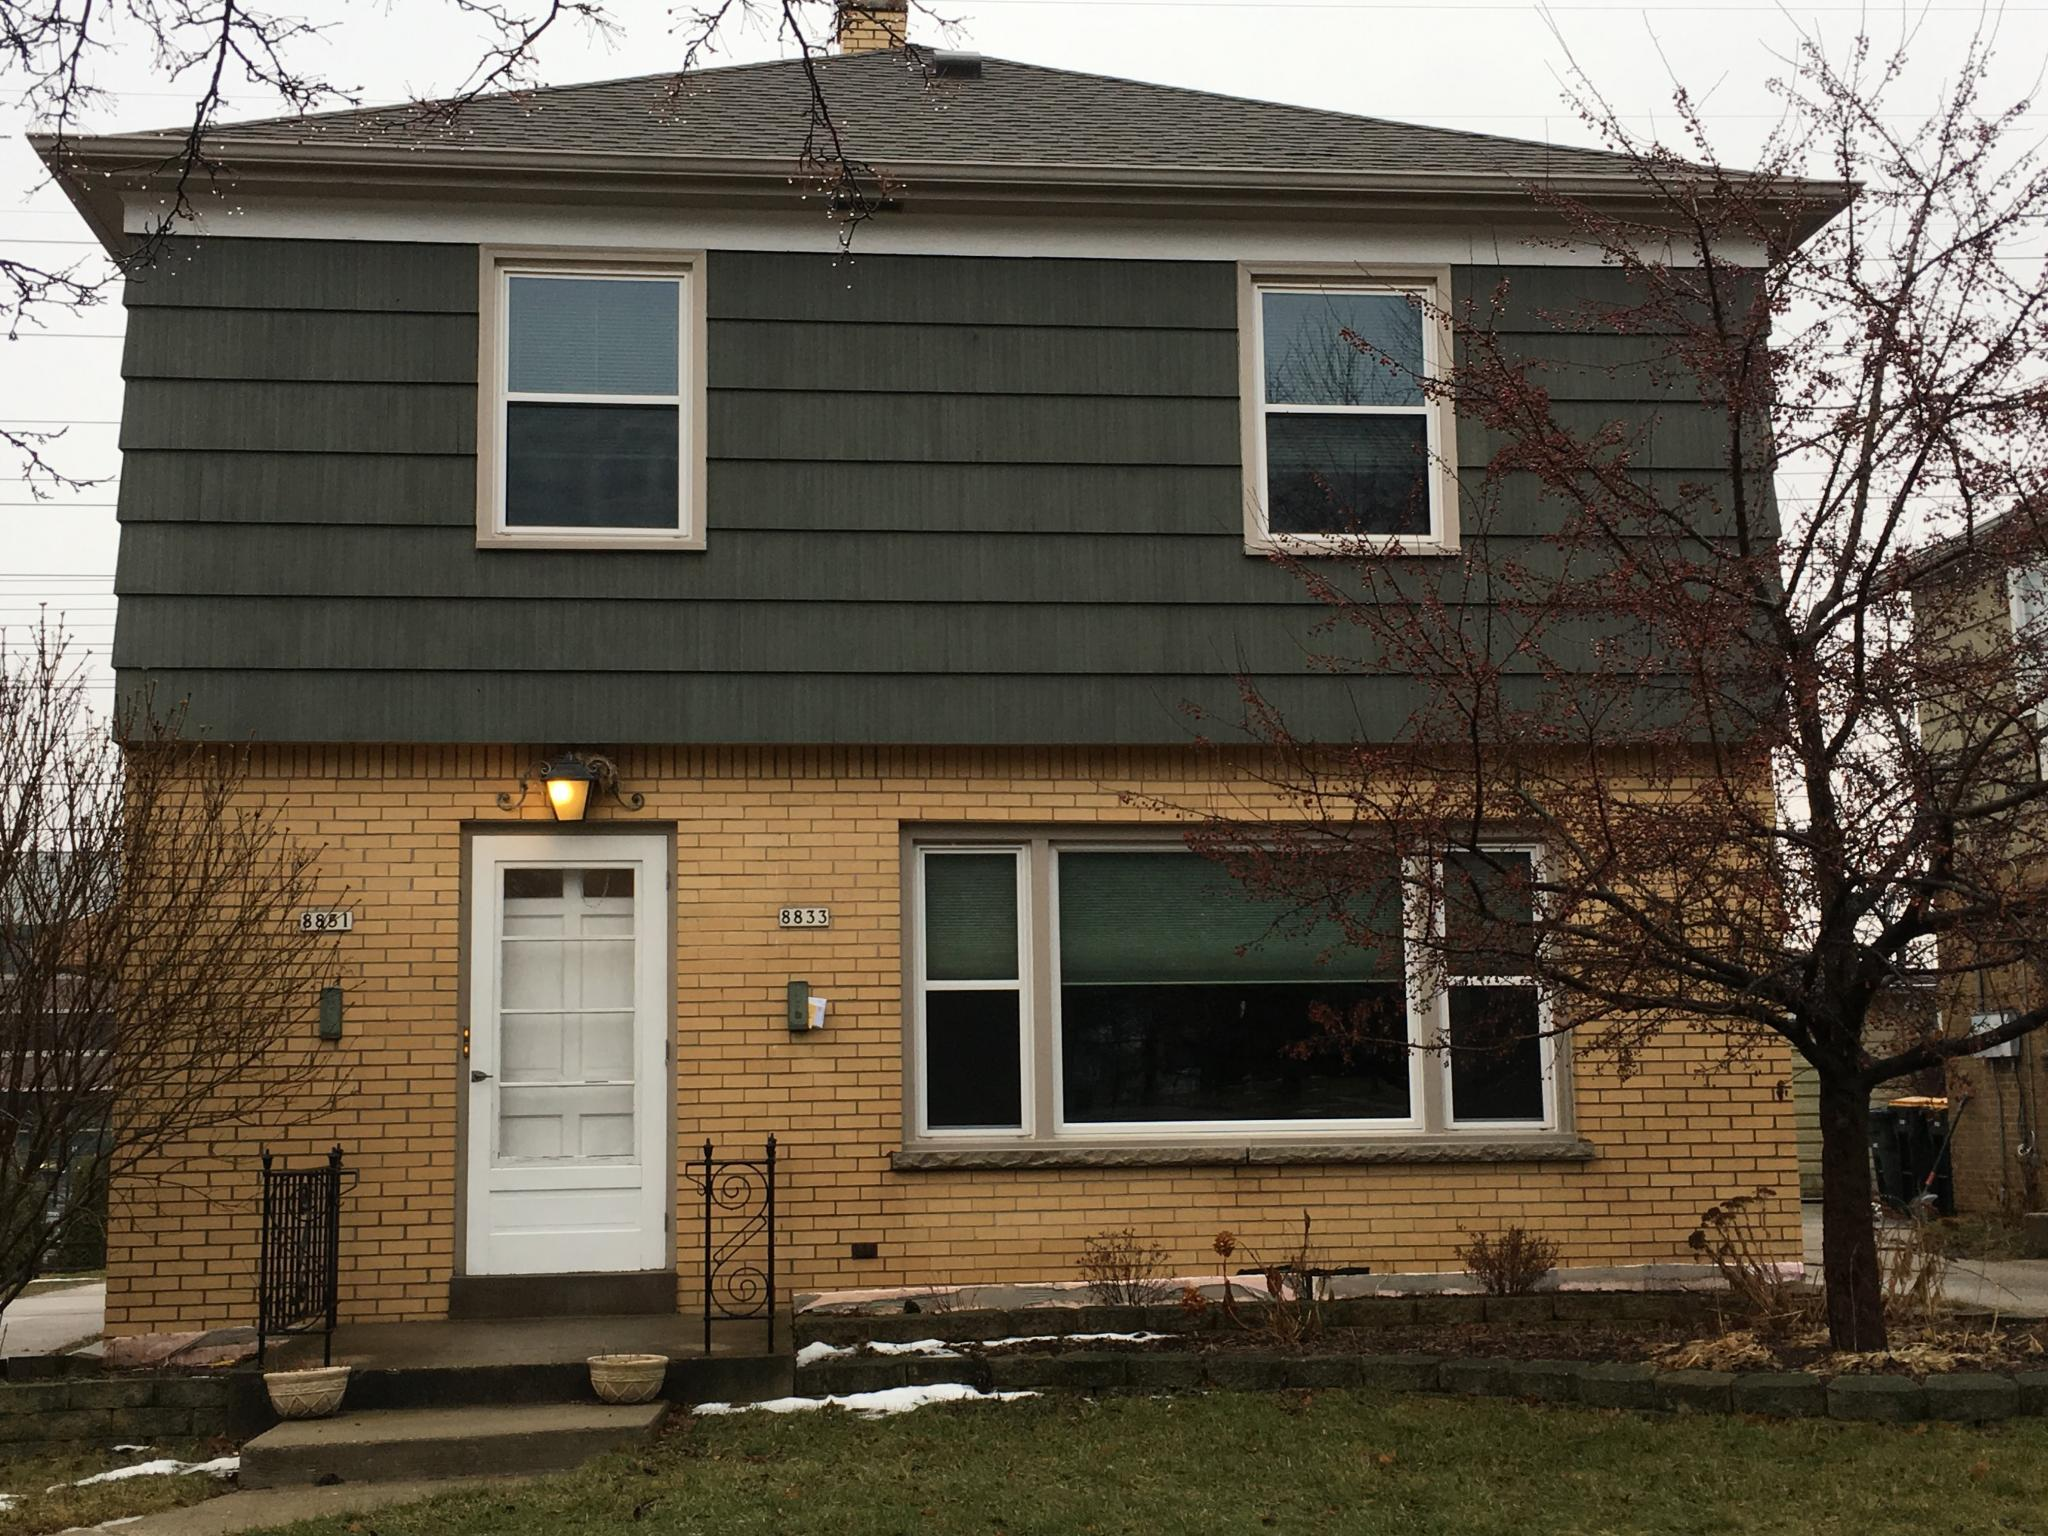 8831 W Hawthorne Ave For Rent - Wauwatosa, WI | Trulia